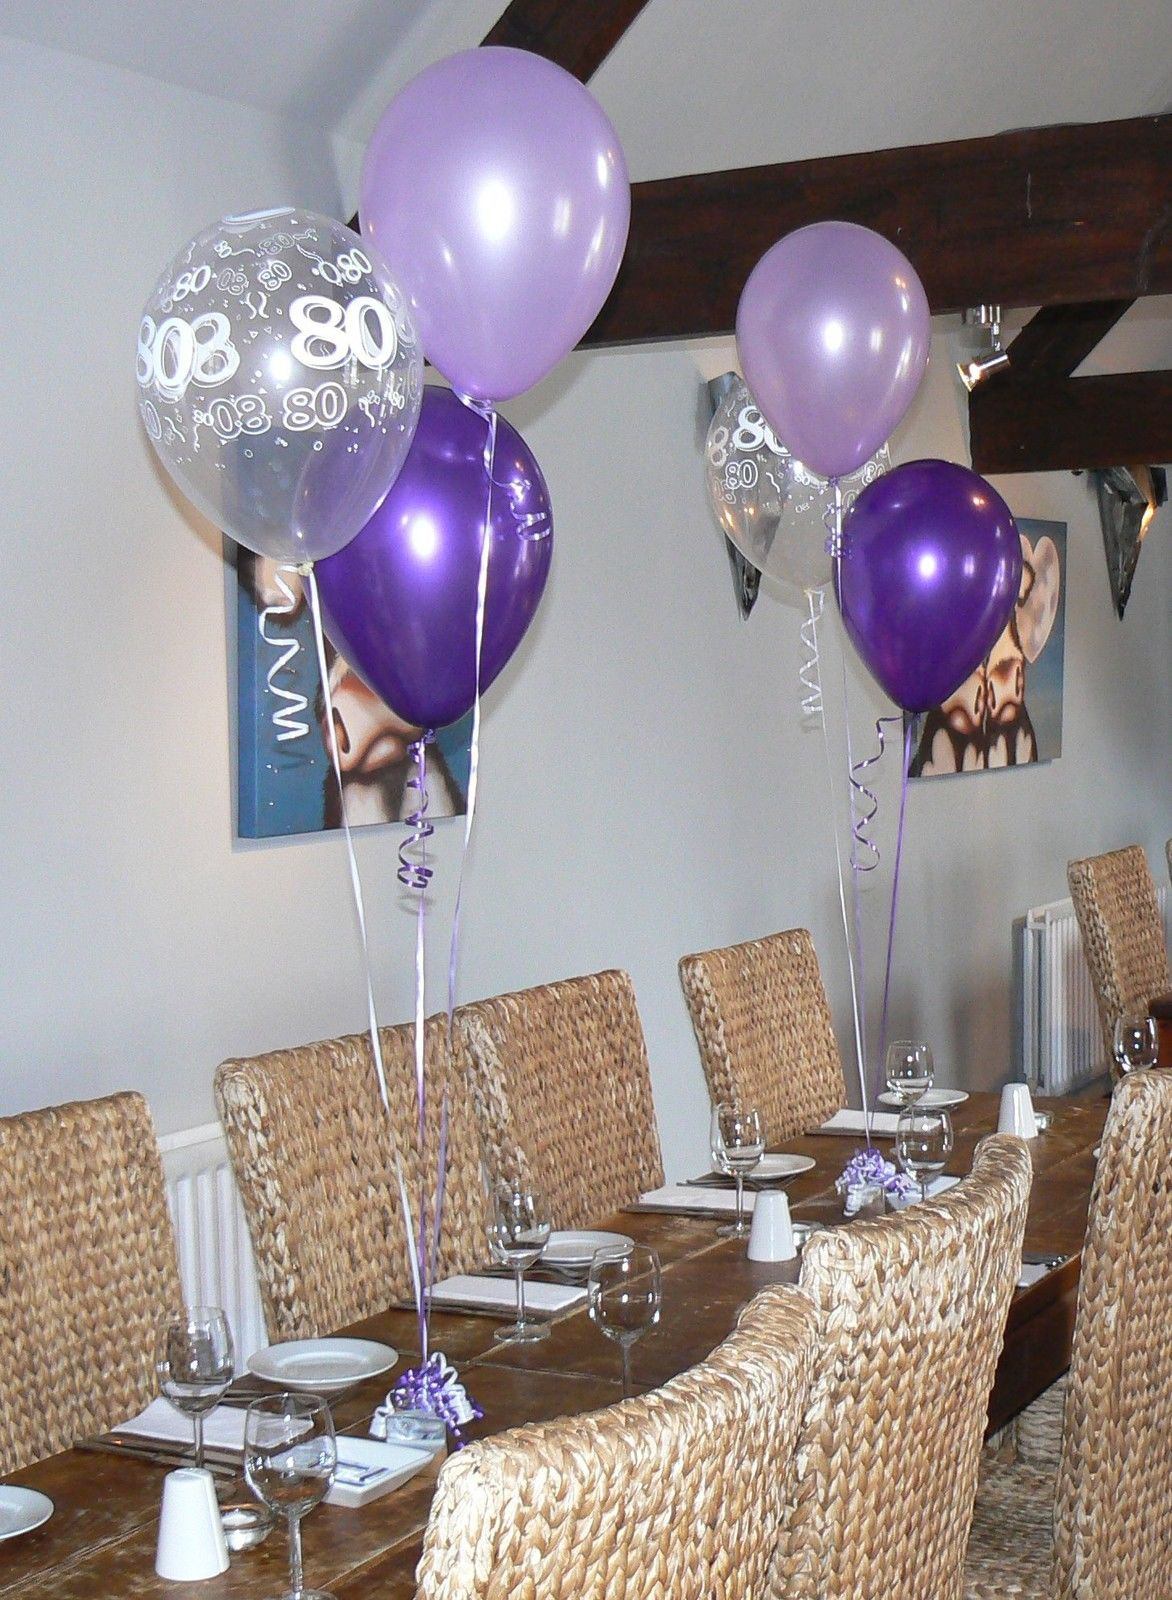 details about 80th birthday balloons 10 table decorations purple rh pinterest com